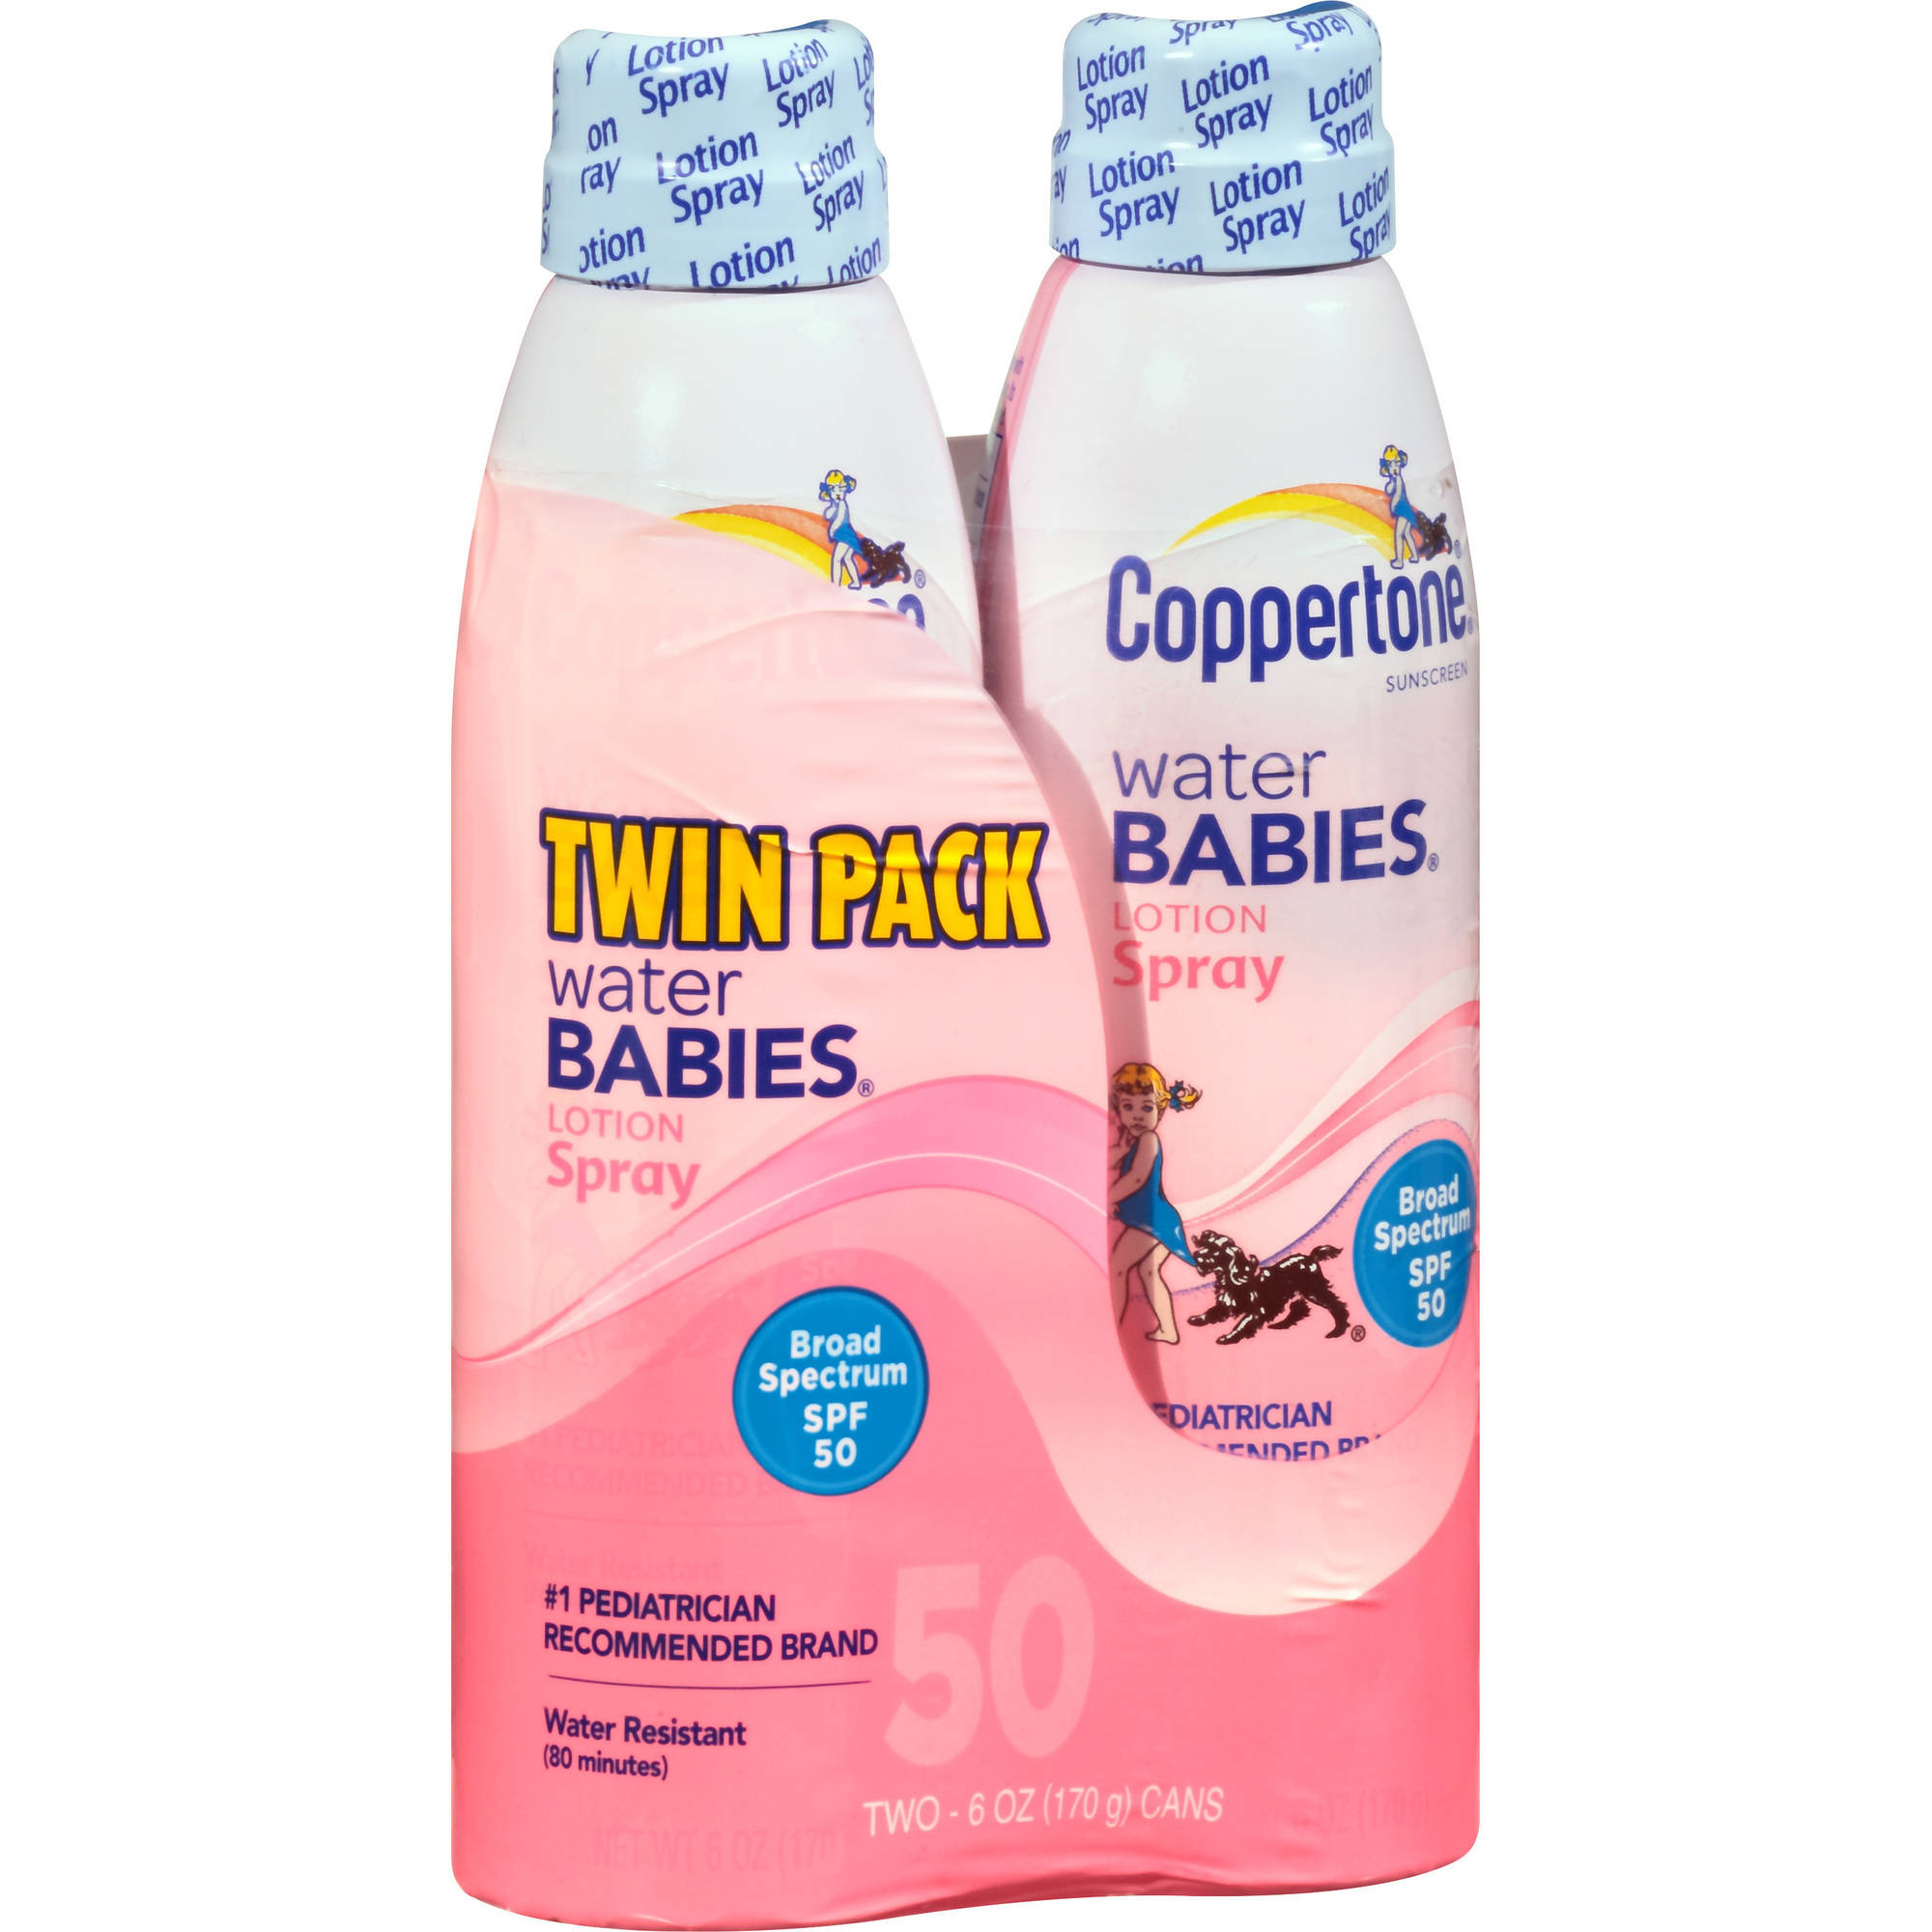 Coppertone Water Babies Lotion Spray Sunscreen, SPF 50, 6 fl oz, (Pack of 2)